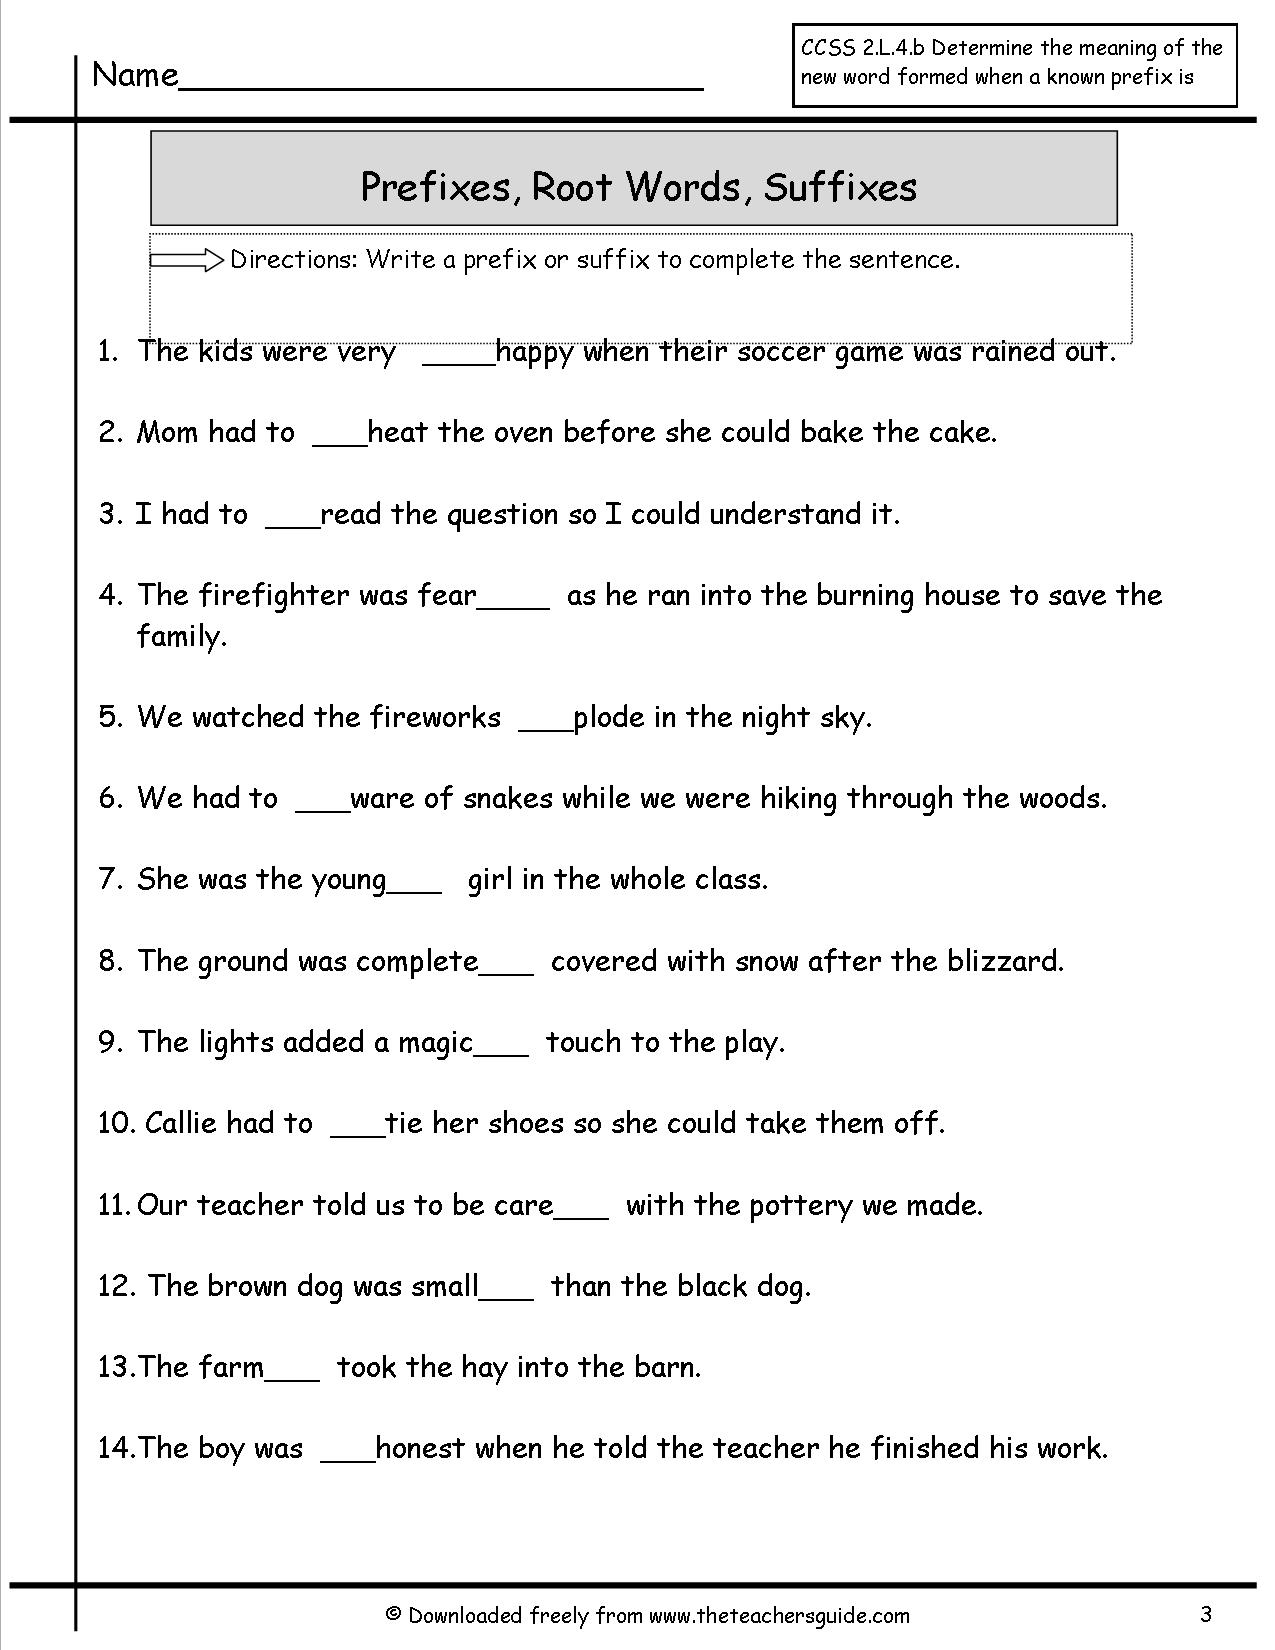 19 Best Images Of Free Printable Prefix Worksheets 4th